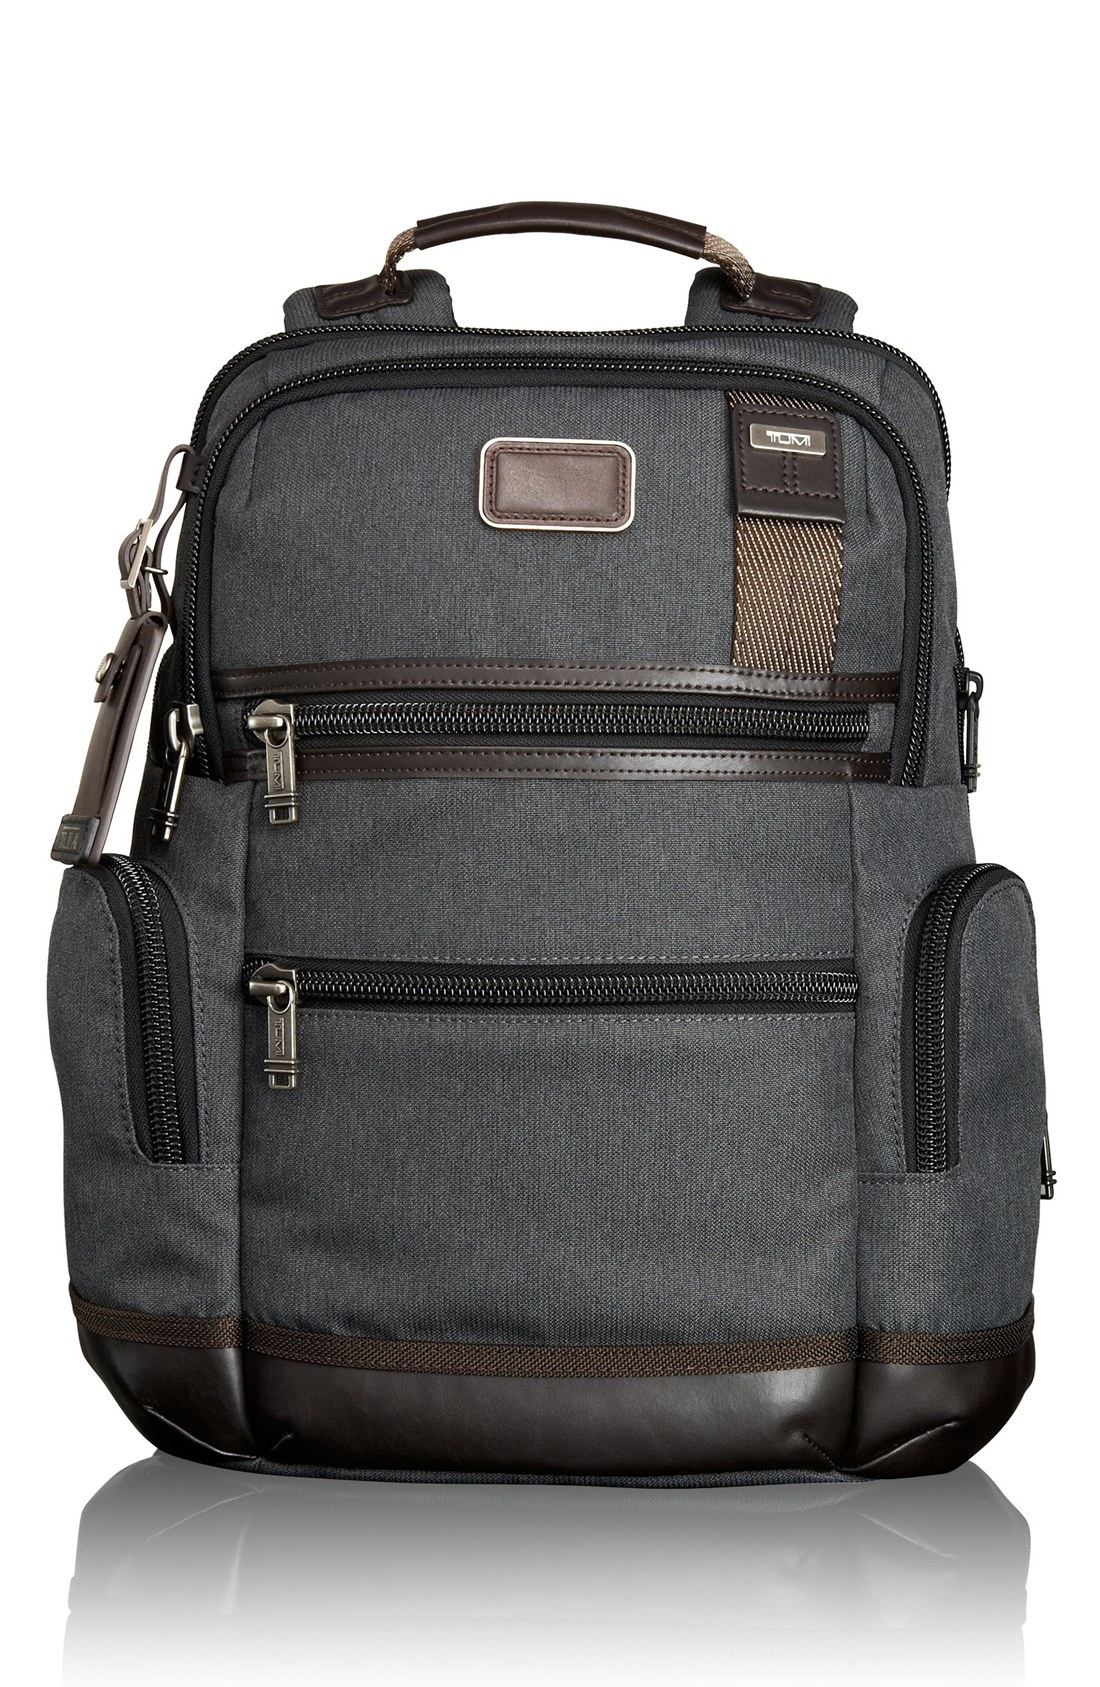 Leather Backpacks For Men yD3QFmZq